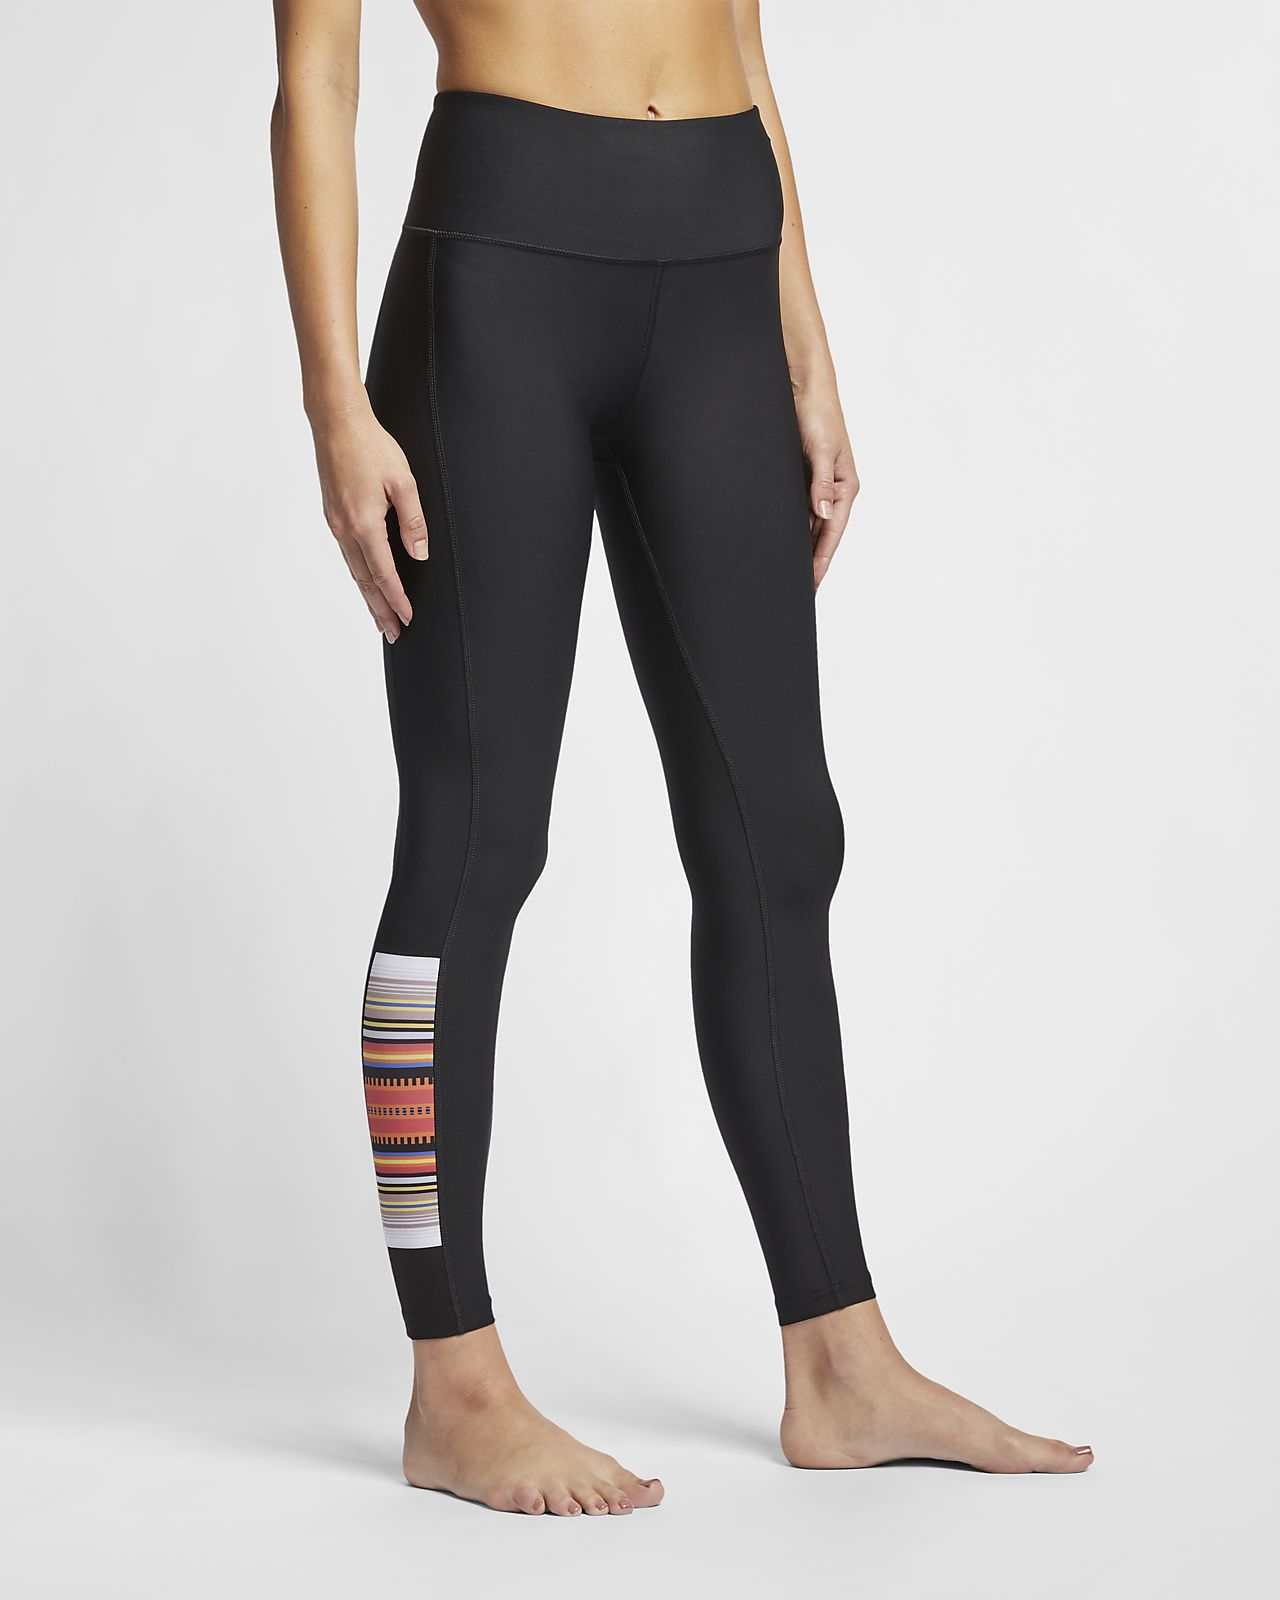 Hurley Quick Dry Pendleton Acadia Women's Surf Leggings